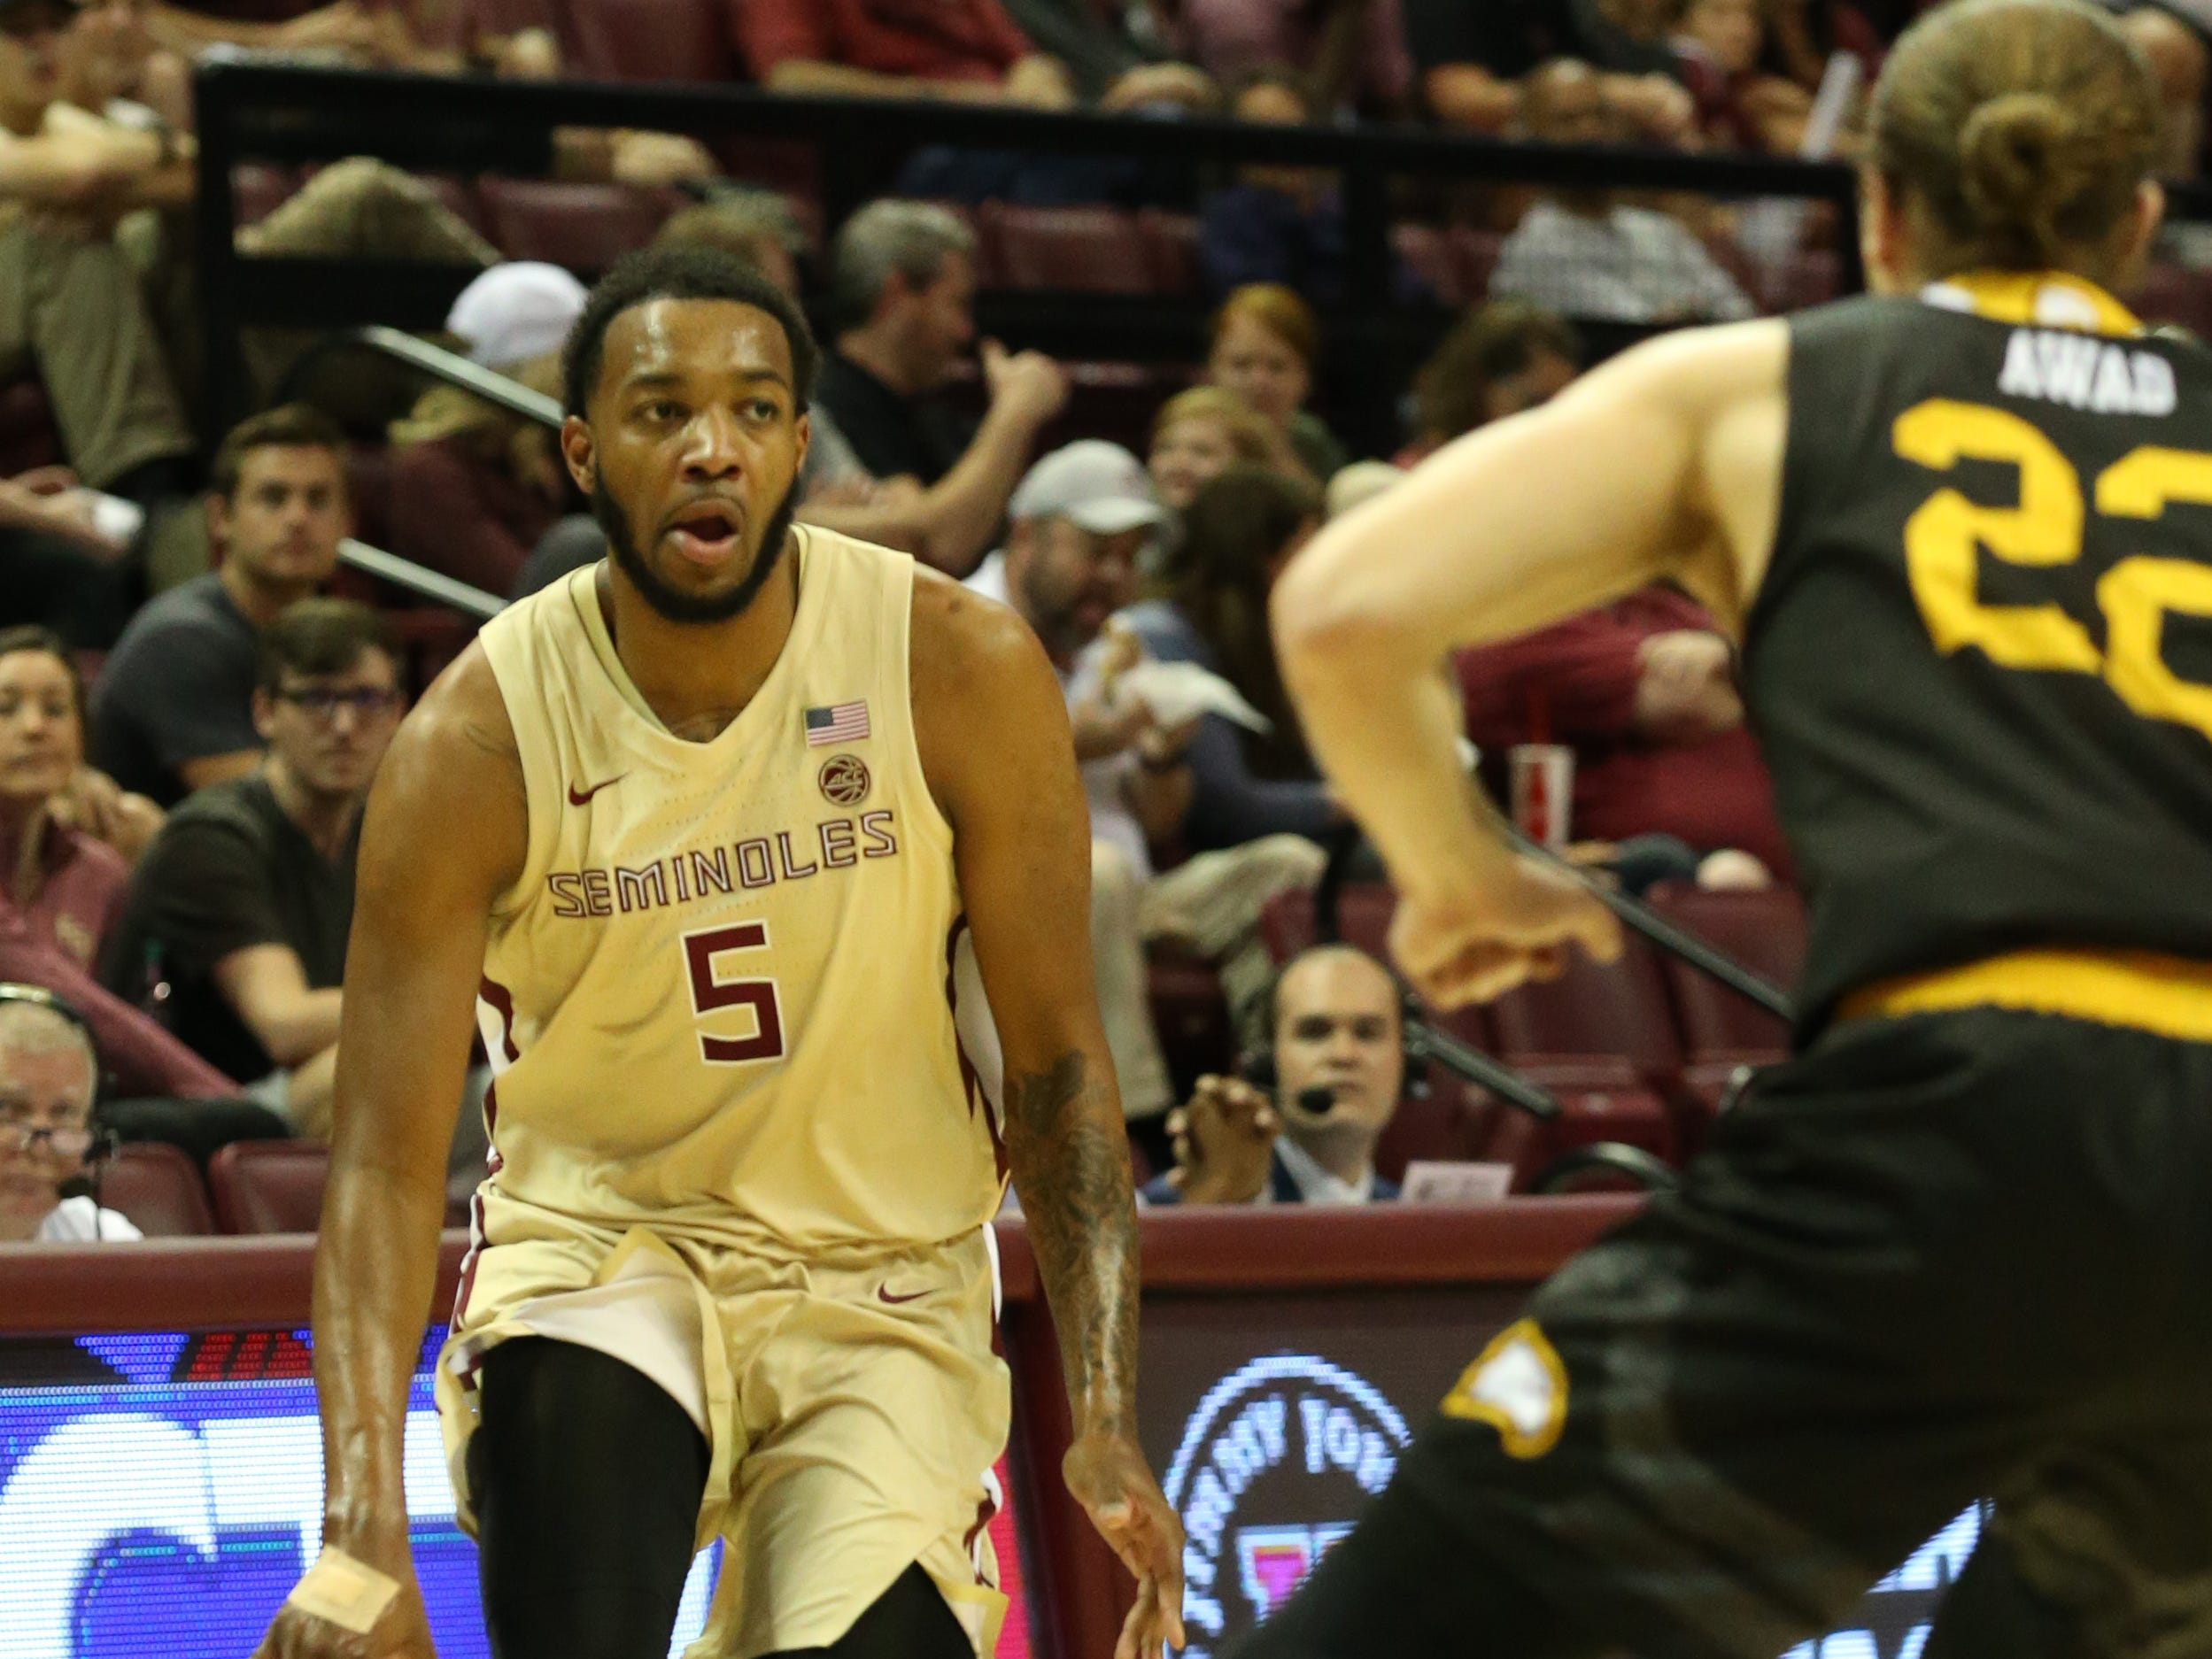 Florida State Seminoles guard PJ Savoy (5) drives the ball down the court as the Florida State Seminoles host the Winthrop Eagles for men's basketball at the Tucker Civic Center, Tuesday, Jan. 1, 2019.